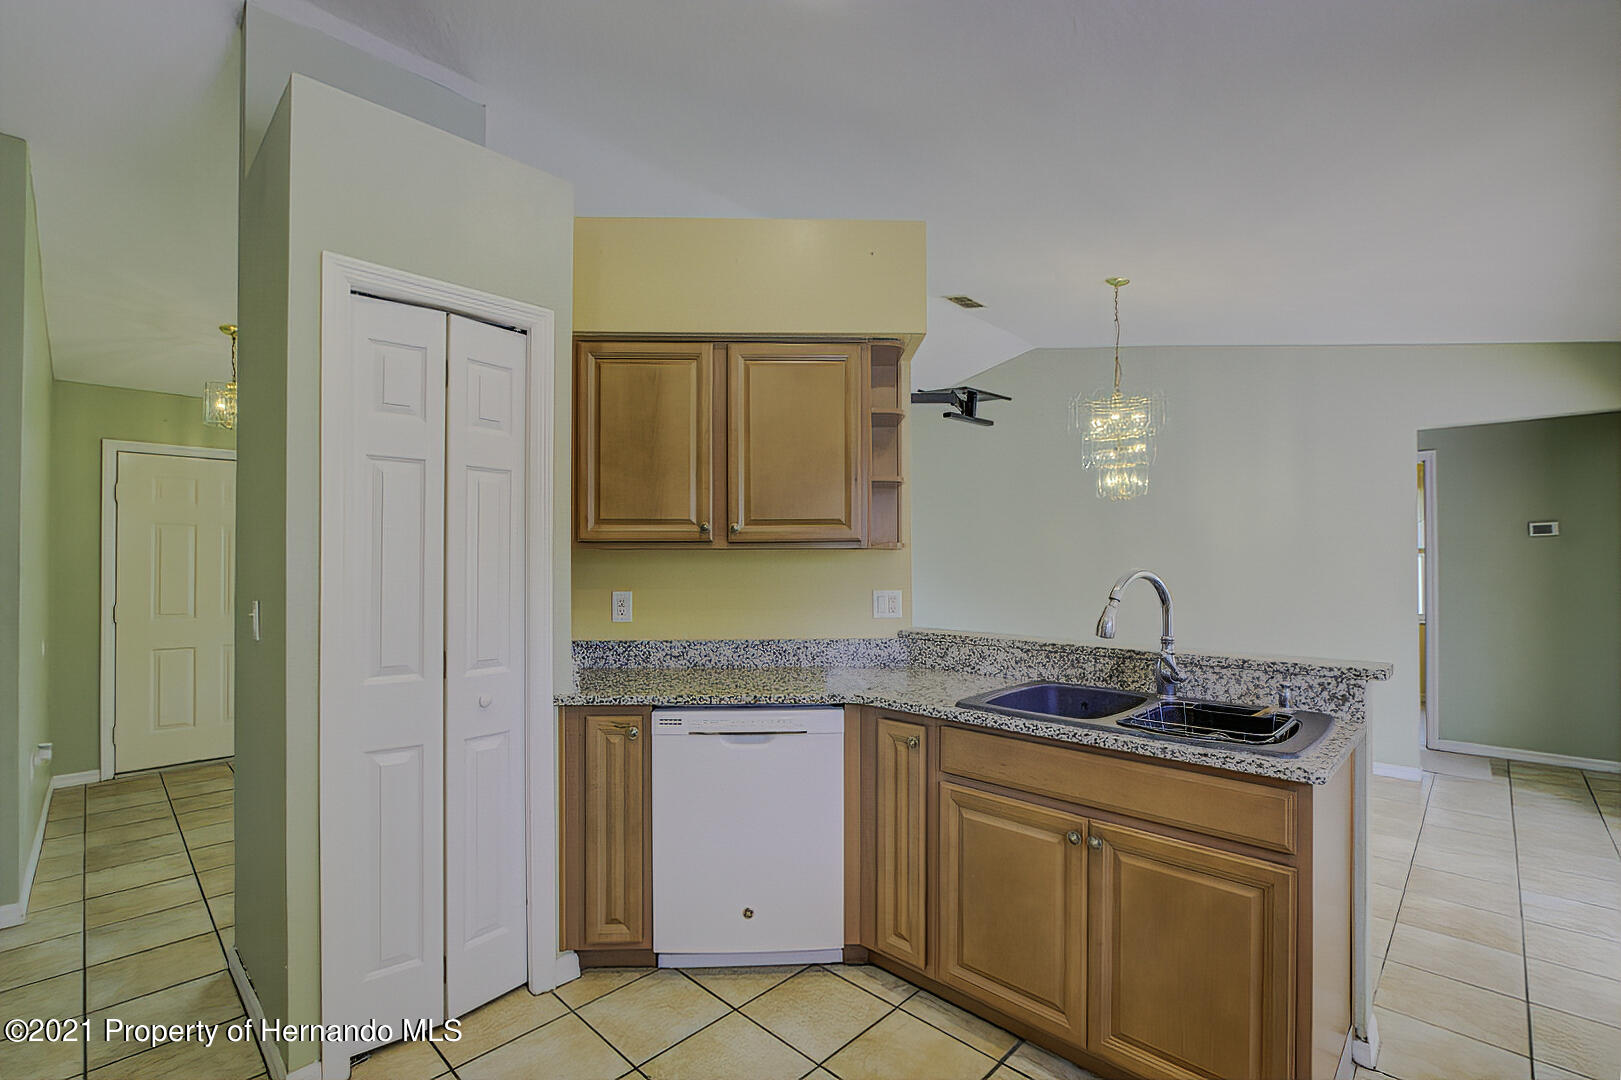 Image 8 of 27 For 12257 Genter Drive